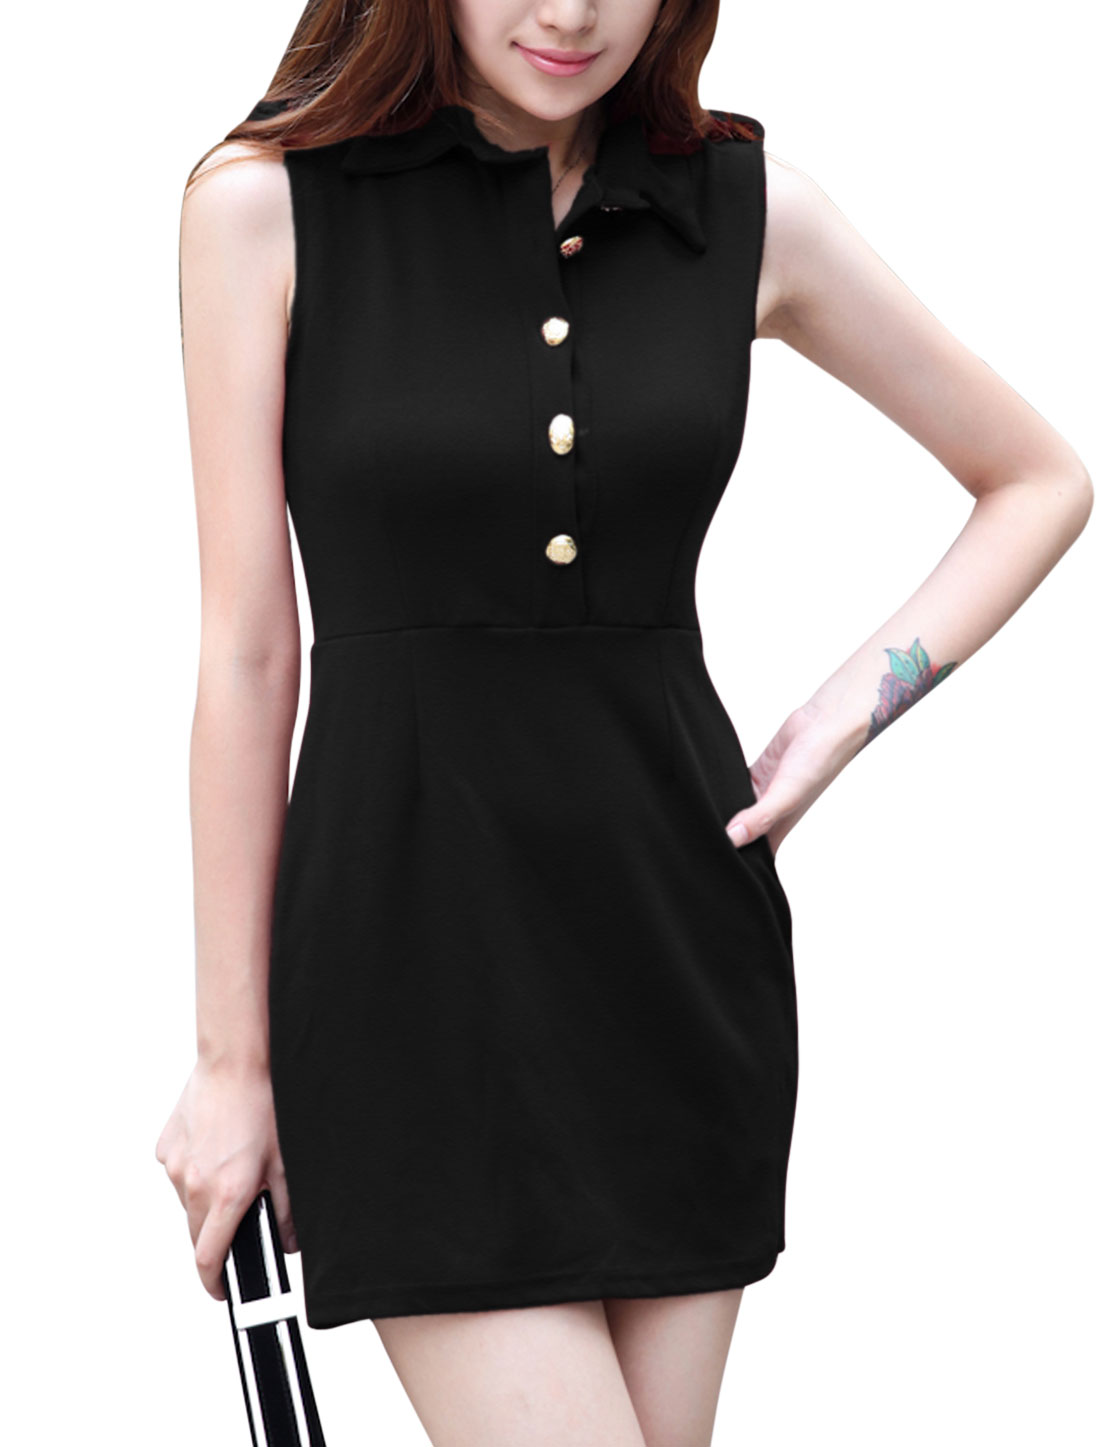 Women Turn Down Collar Half Button Closure Sleeveless Casual Dress Black S